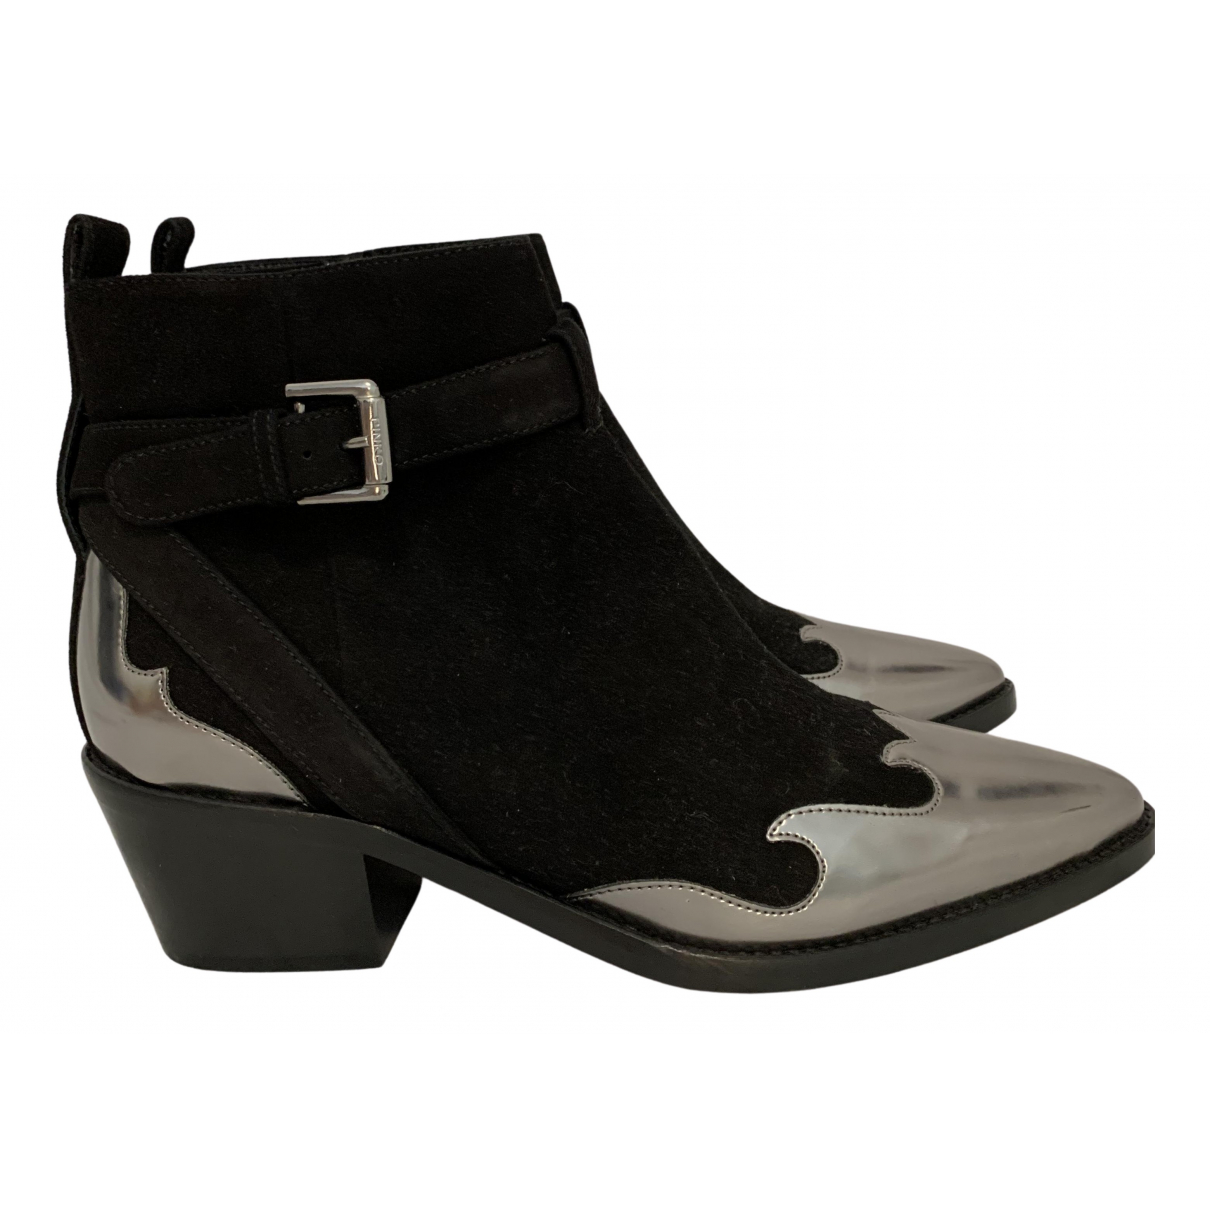 Pinko N Black Boots for Women 40 IT